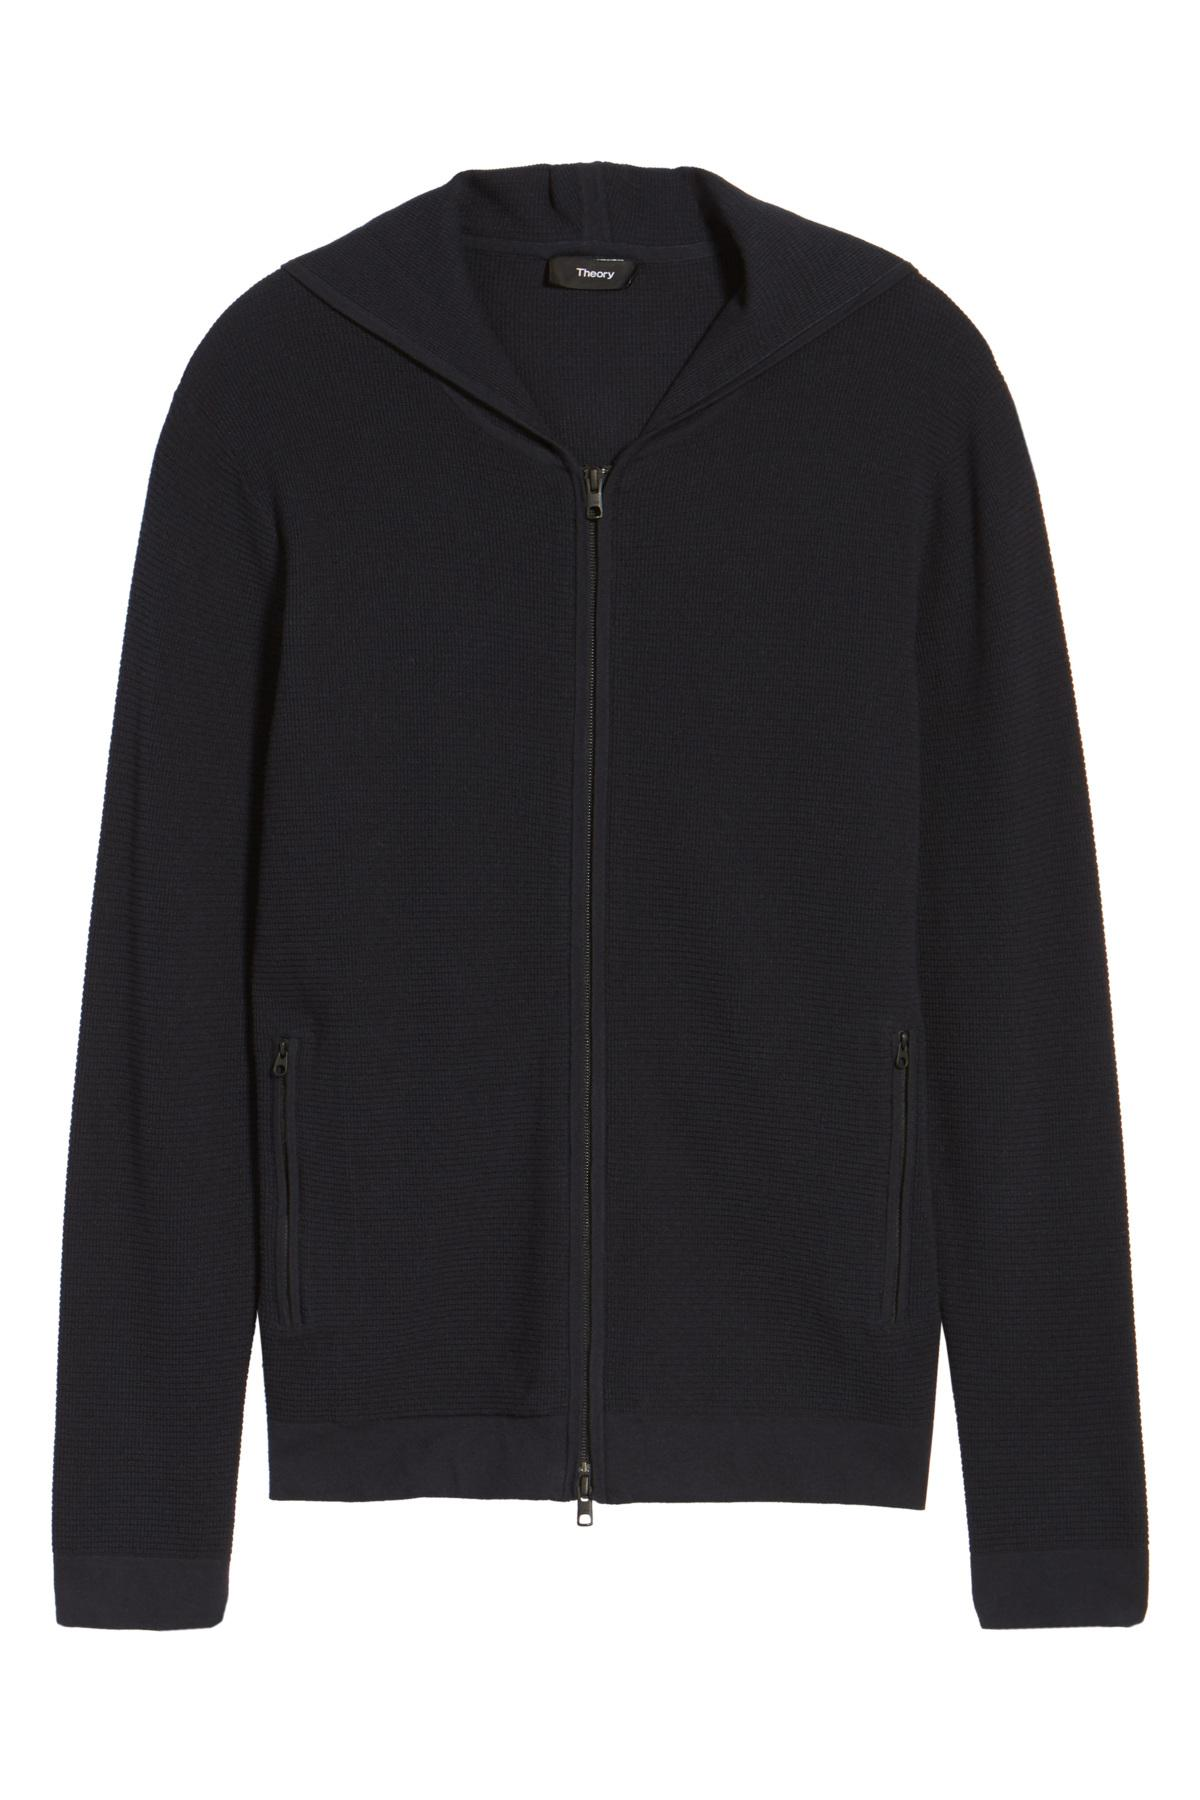 Theory Boris Zip Front Hooded Sweater in Black for Men | Lyst